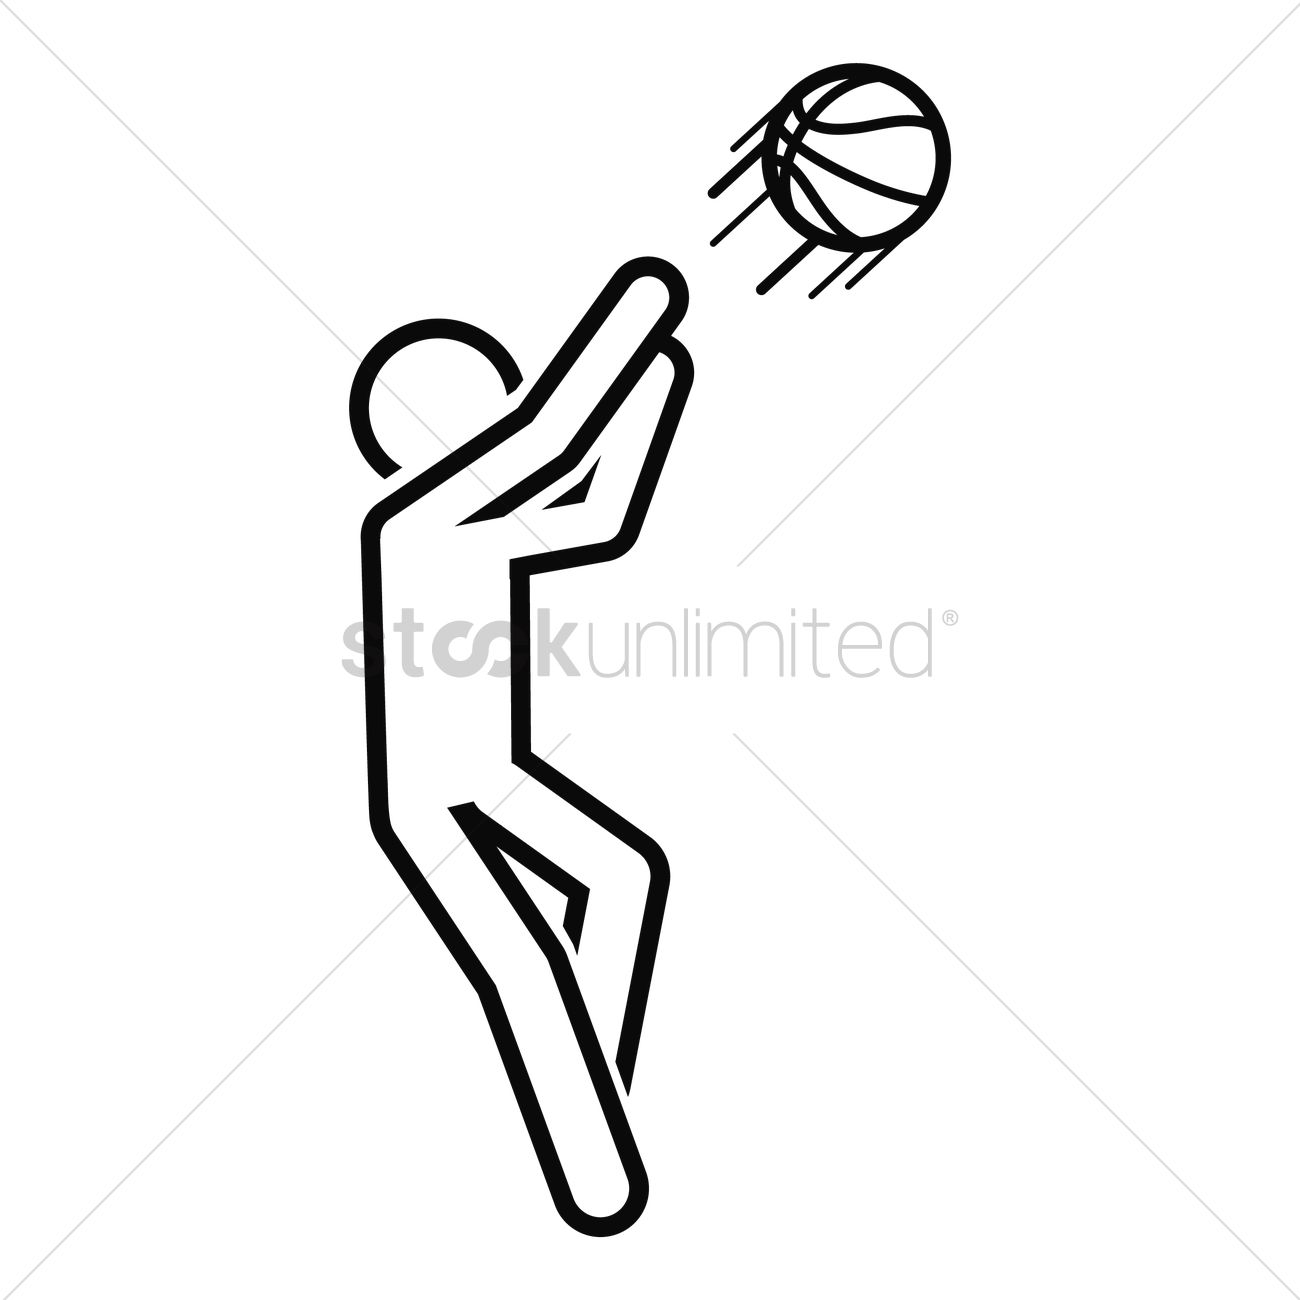 Uncategorized How To Draw A Basketball Player basketball player vector image 1979505 stockunlimited graphic